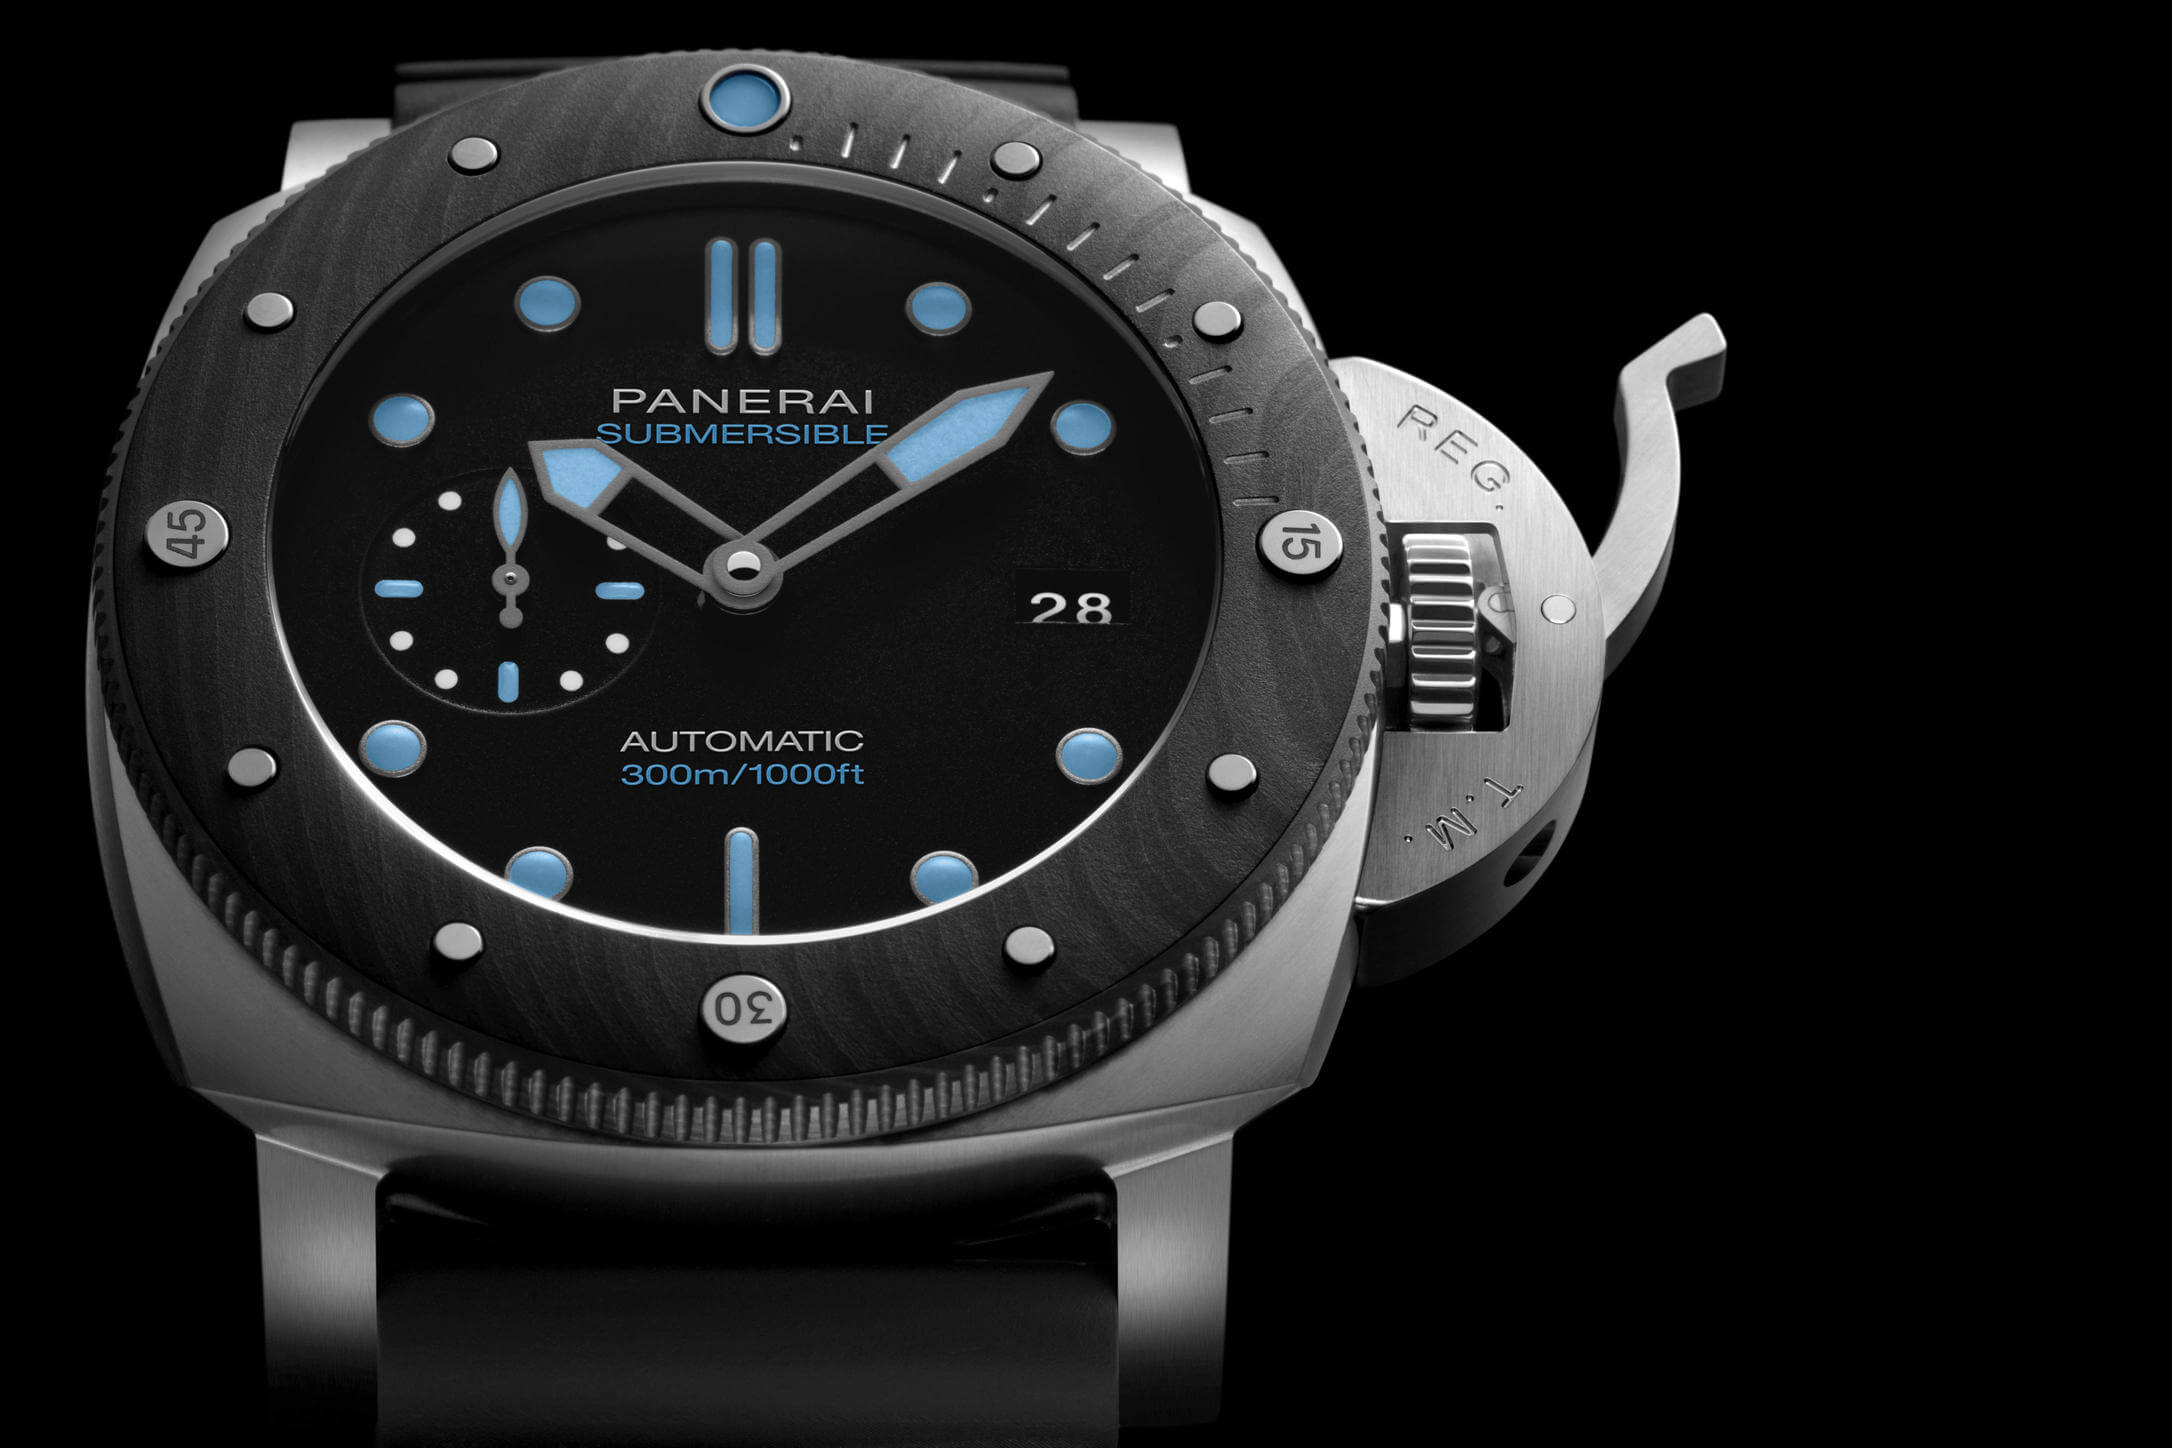 PANERAI SUBMERSIBLE BMG TECH 47MM blog debajo del reloj